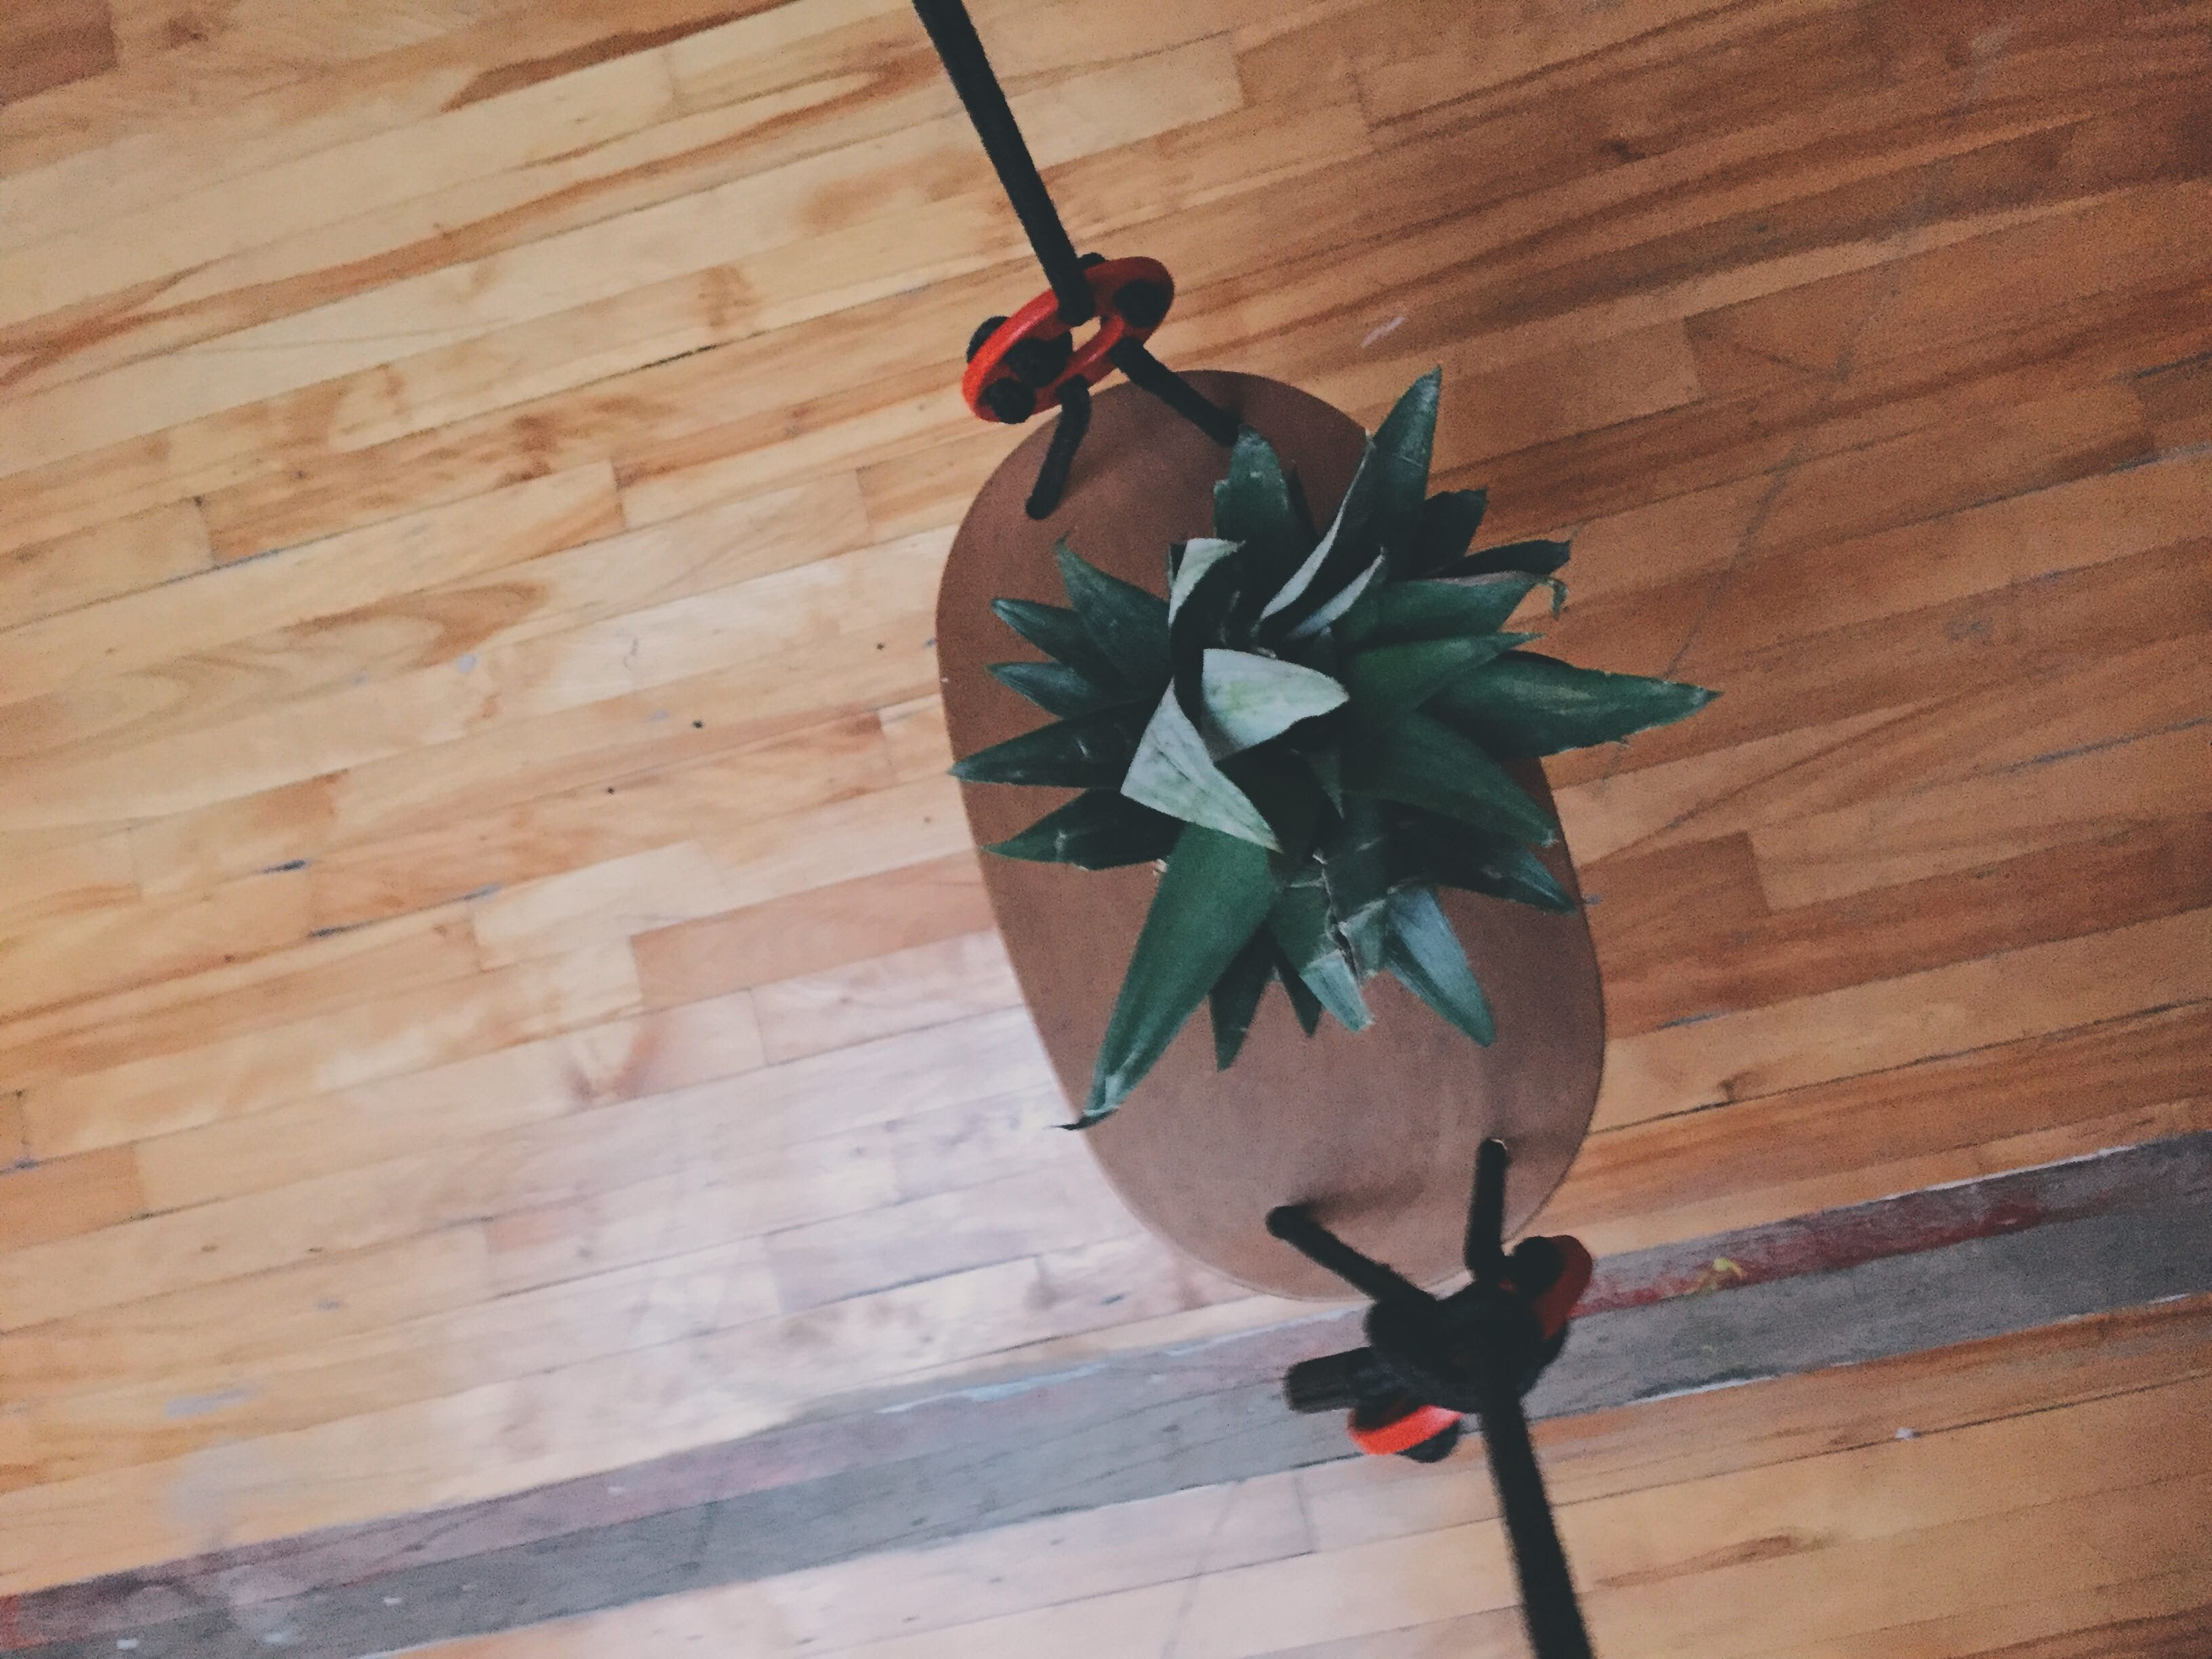 Free stock photo of pineapple, fruit, swing, hardwood floor